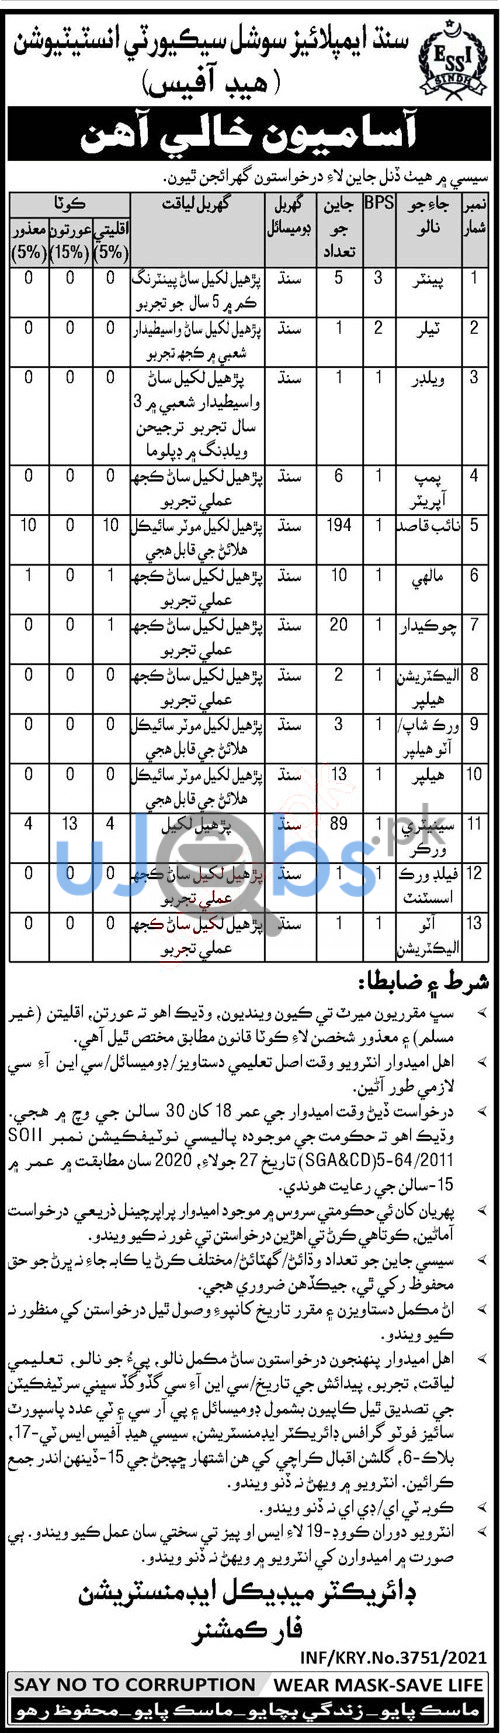 Latest Sindh employees social security institution SESSI jobs 2021 Advertisements